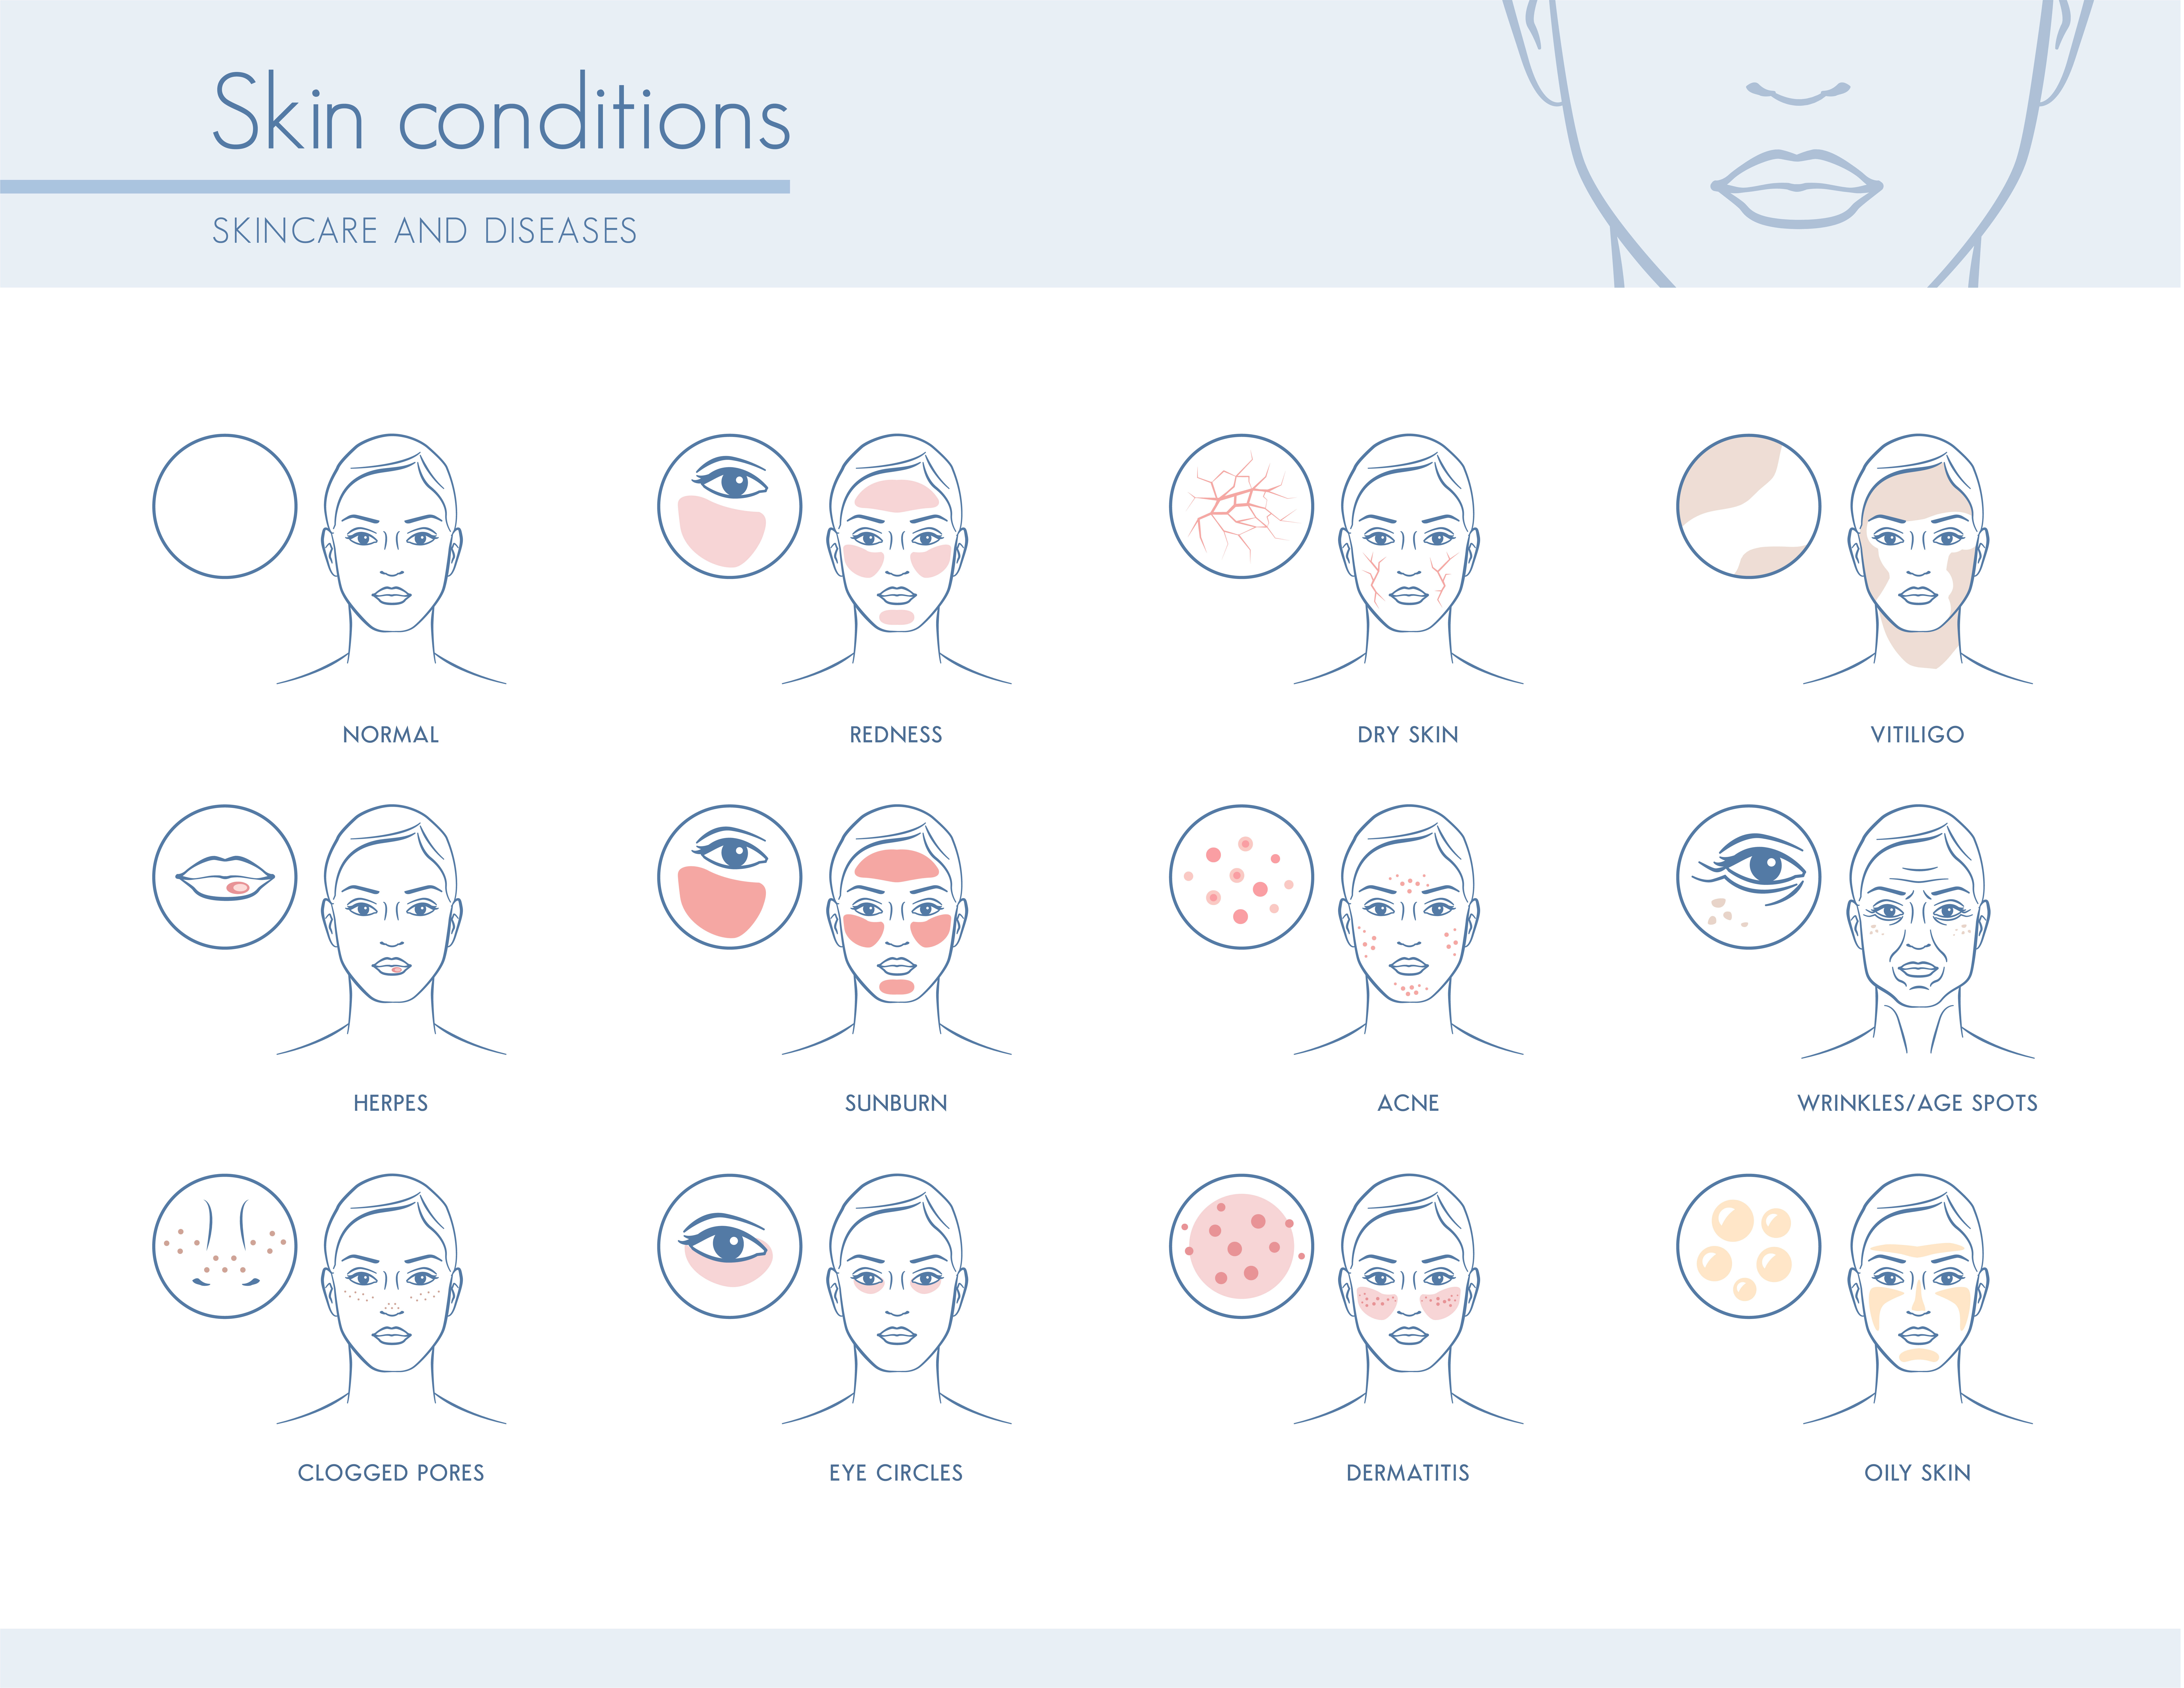 Image illustrating different skin conditions